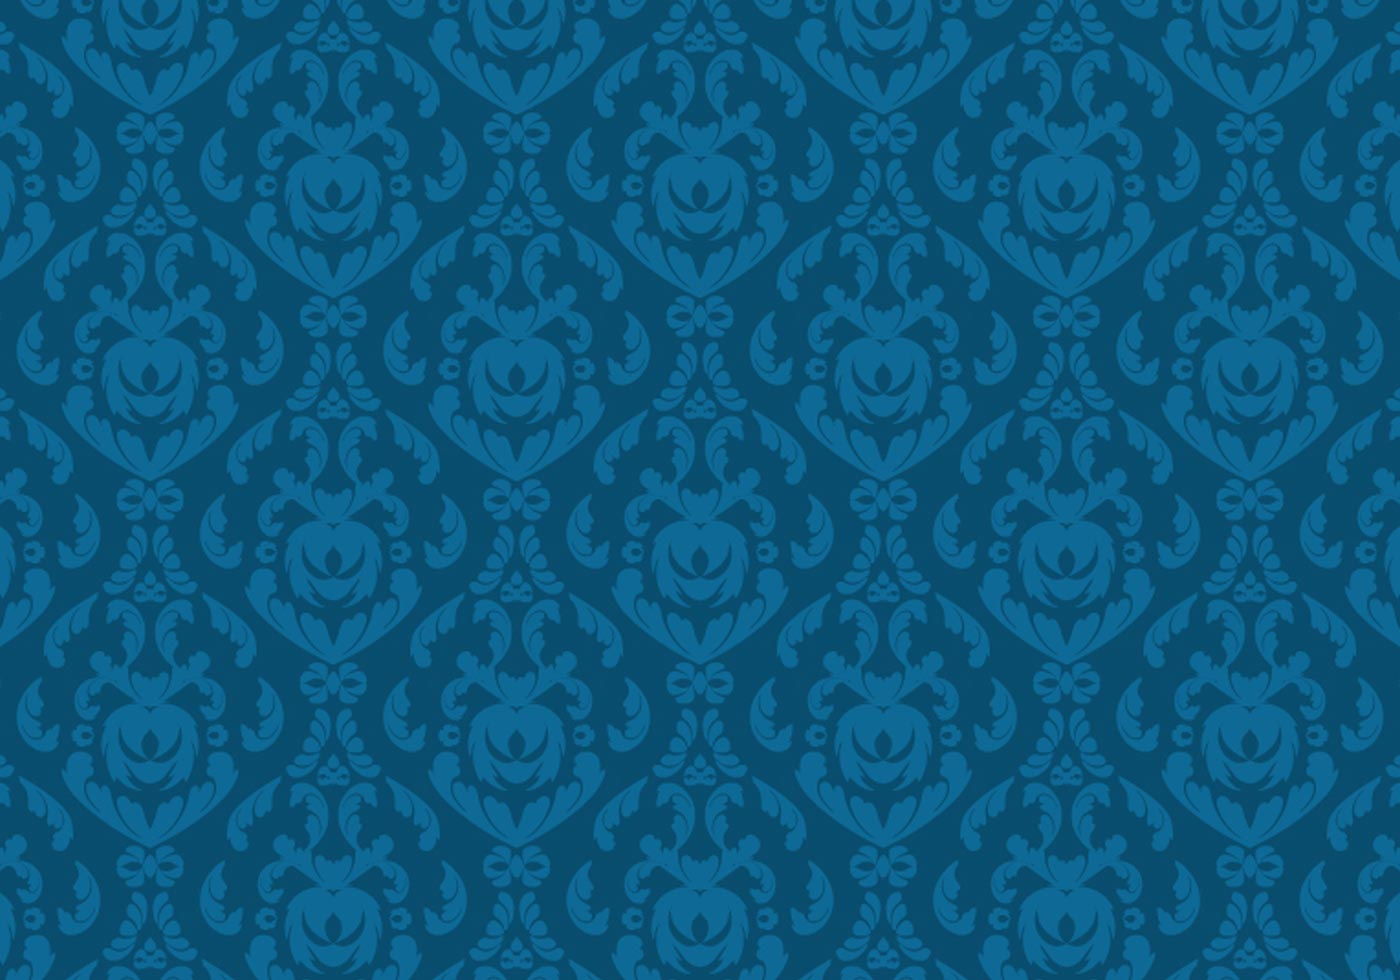 Decorative wallpaper pattern free photoshop pattern at for Wallpaper pattern